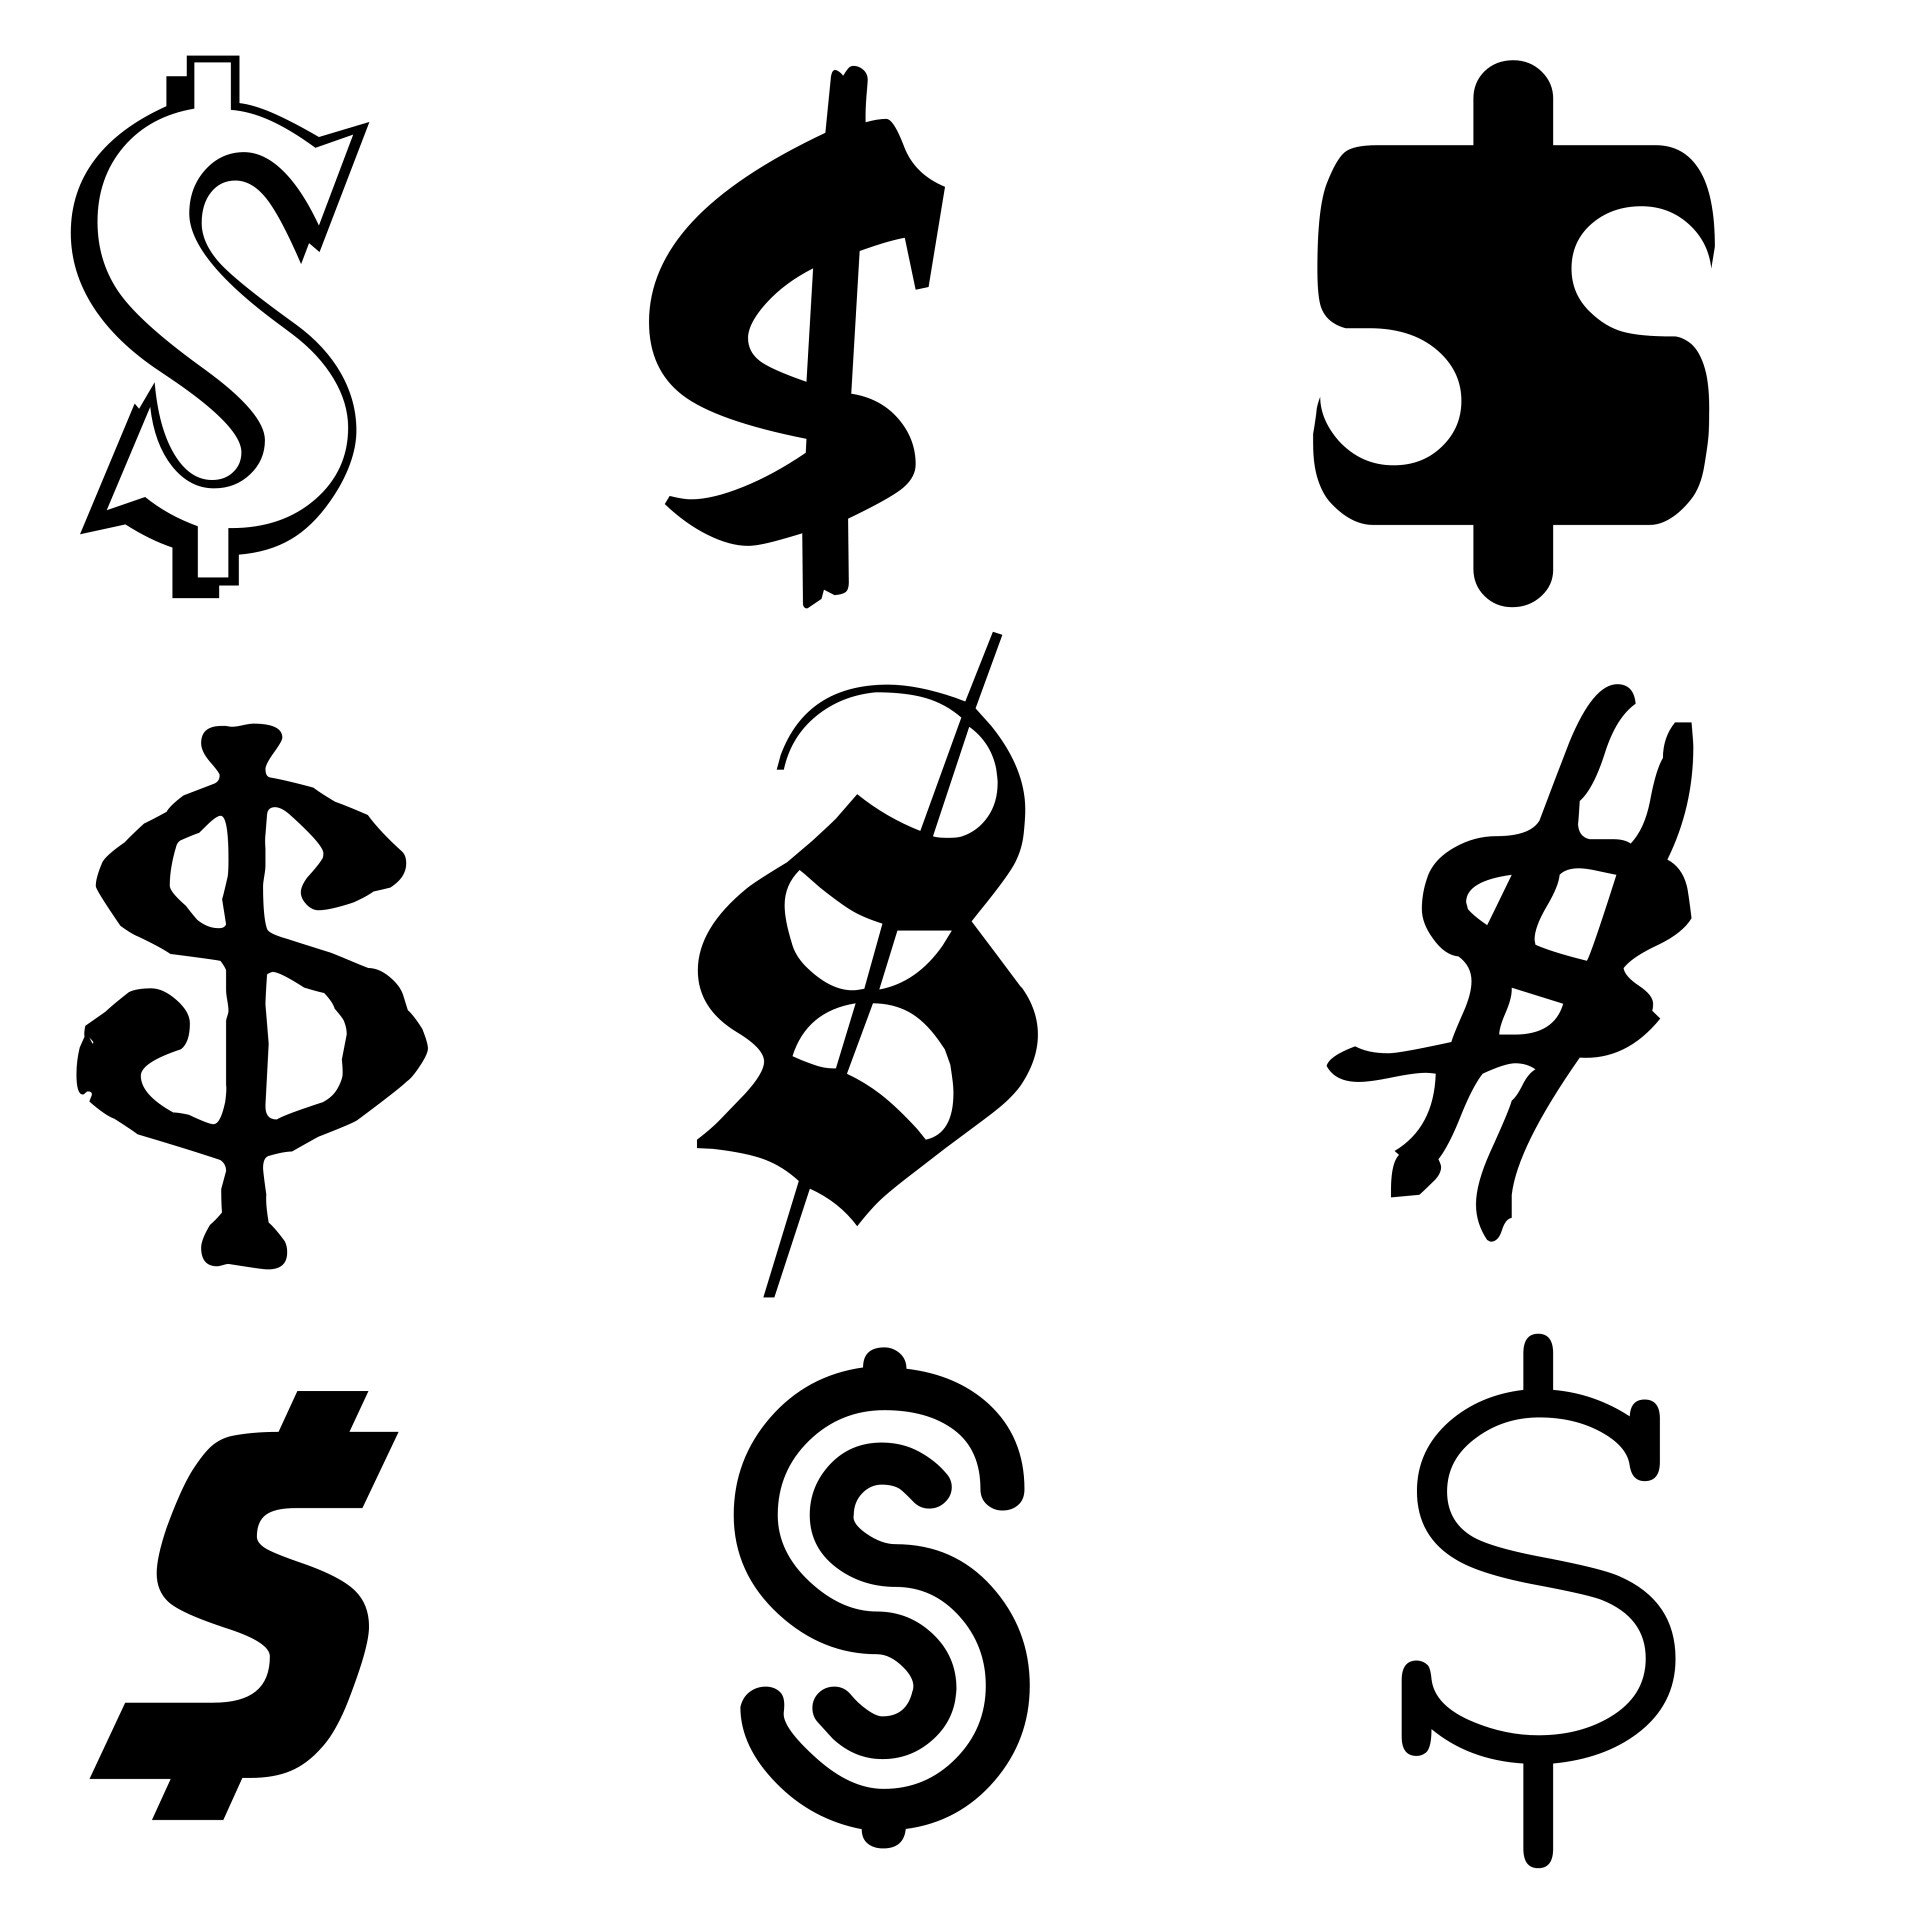 Monetary Design Mystery The Nebulous Origins Of America S Iconic Dollar Sign